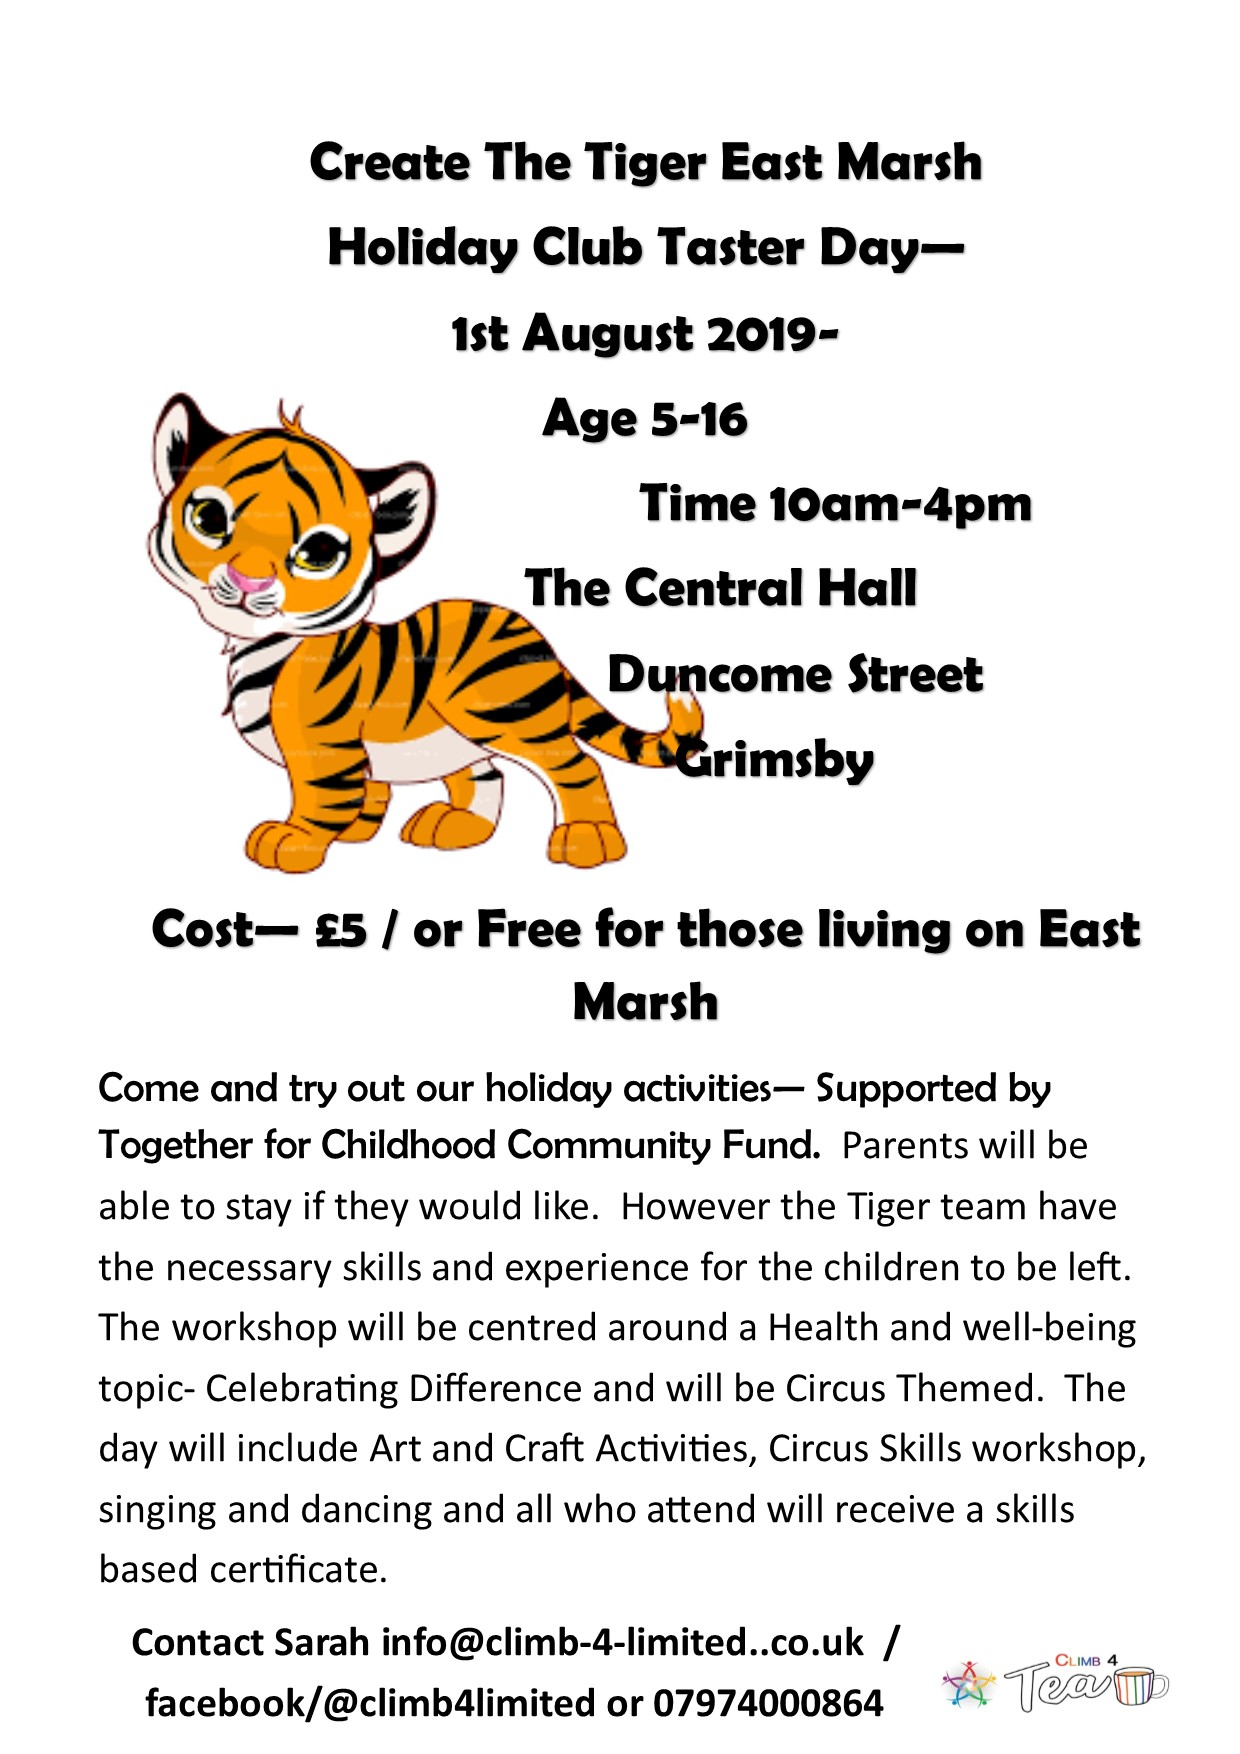 A4 Poster for Central Hall east marsh holiday Club